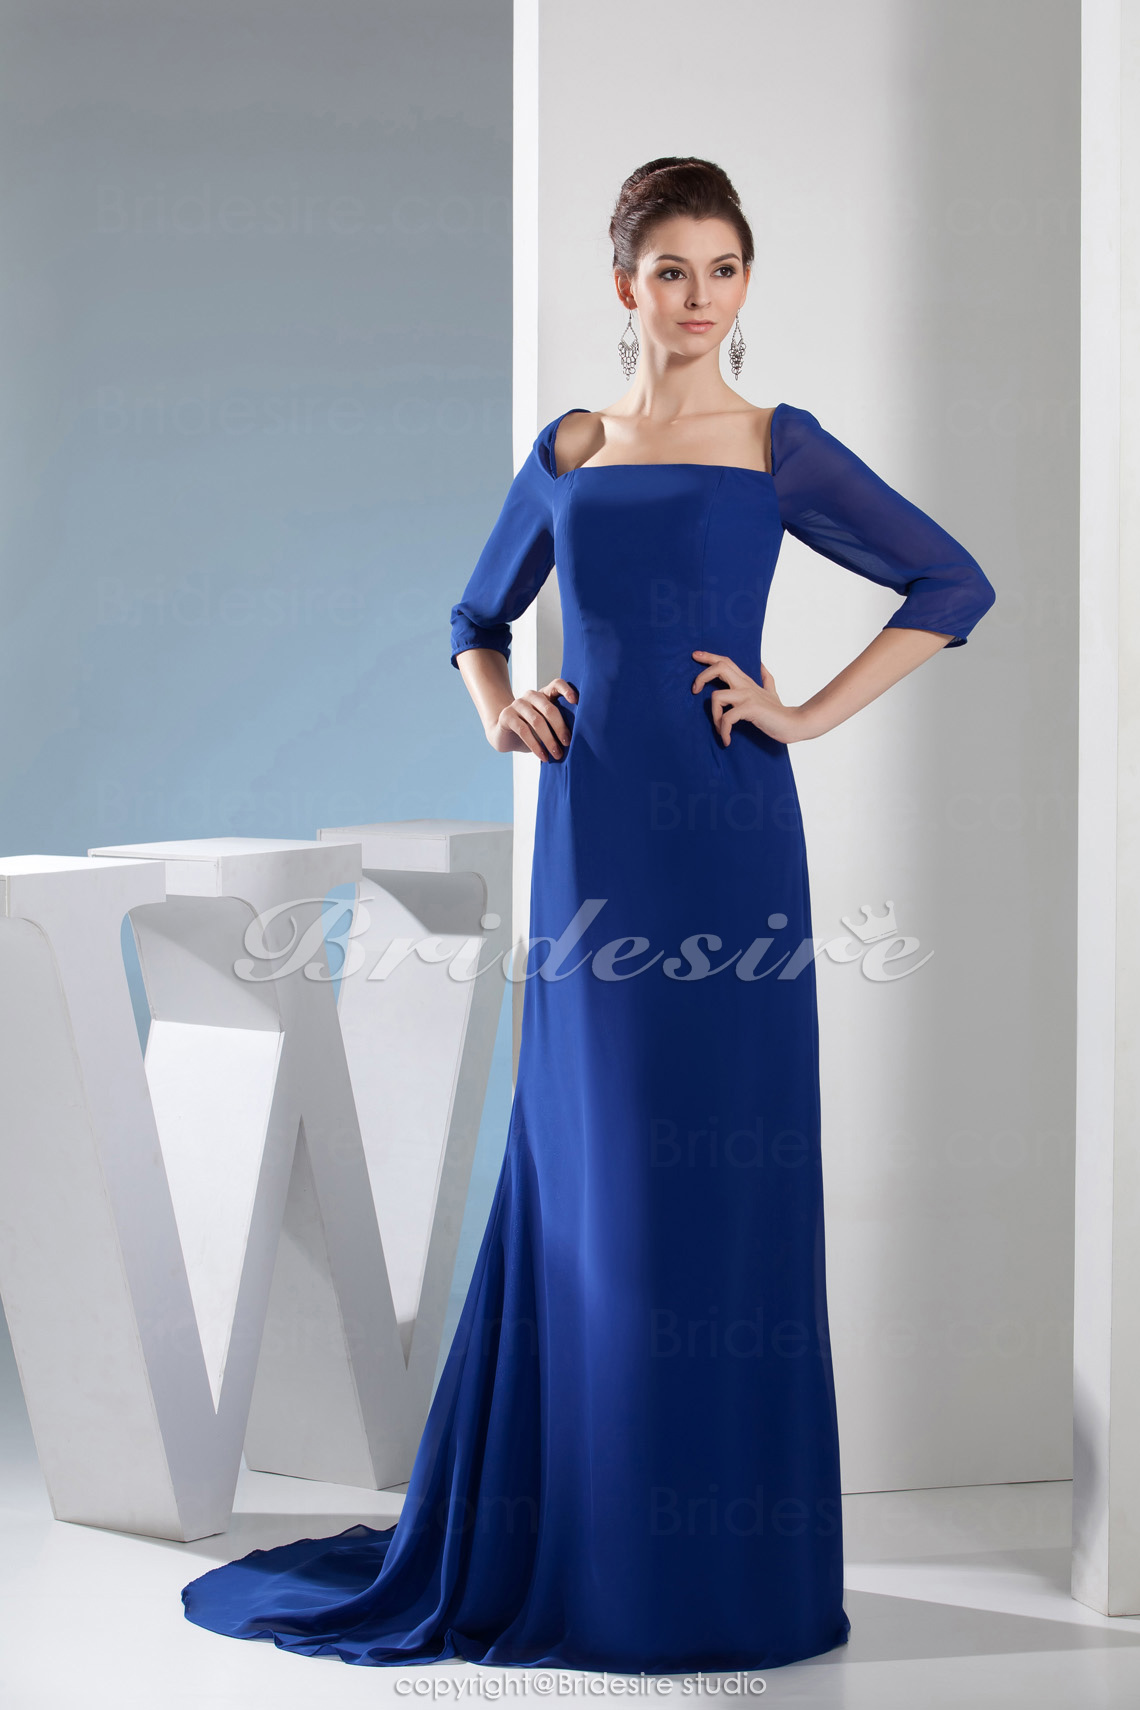 A-line Square Floor-length Sweep/Brush Train 3/4 Length Sleeve Satin Dress